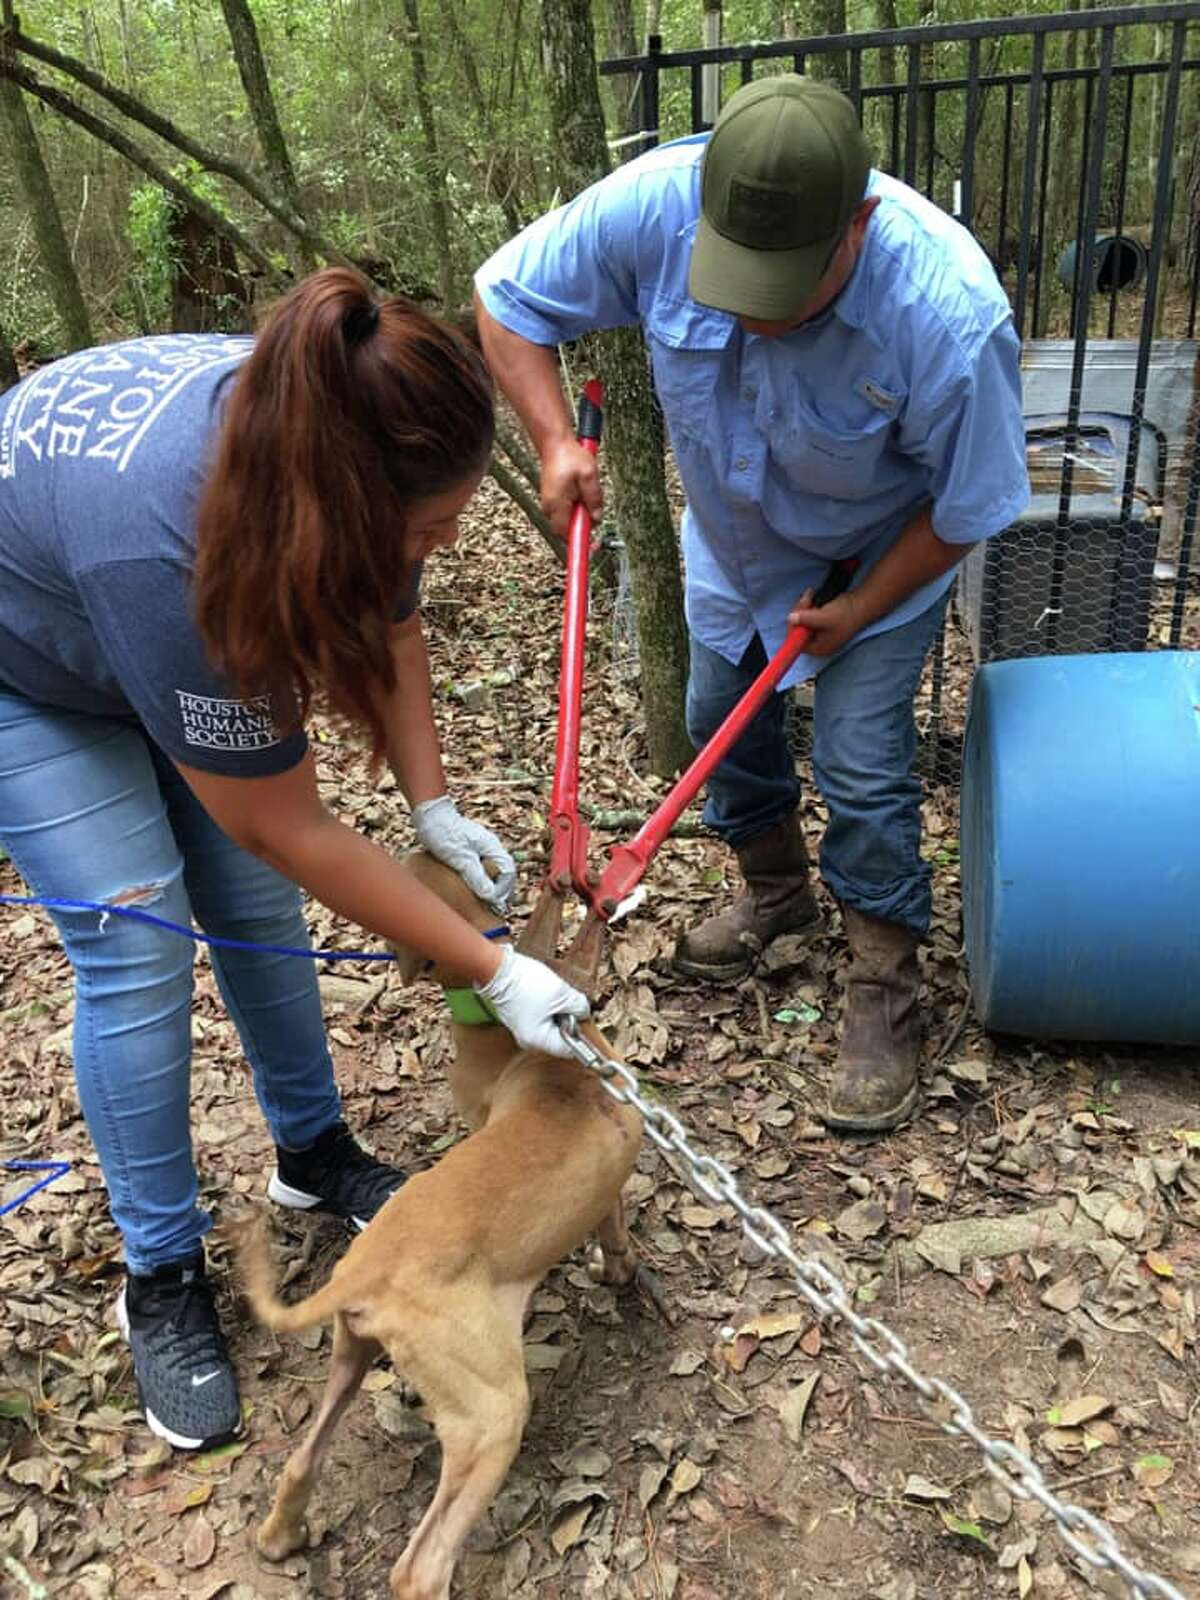 Rescuers found the dogs bound with 15-pound metal chains to trees in a wooded area off Hollyknoll Drive in Plantersville, according to a release from the Grimes County Sheriff's Office. The dogs were found a day after Tropical Storm Imelda, and endured days of heavy rain with minimal access to food and water.